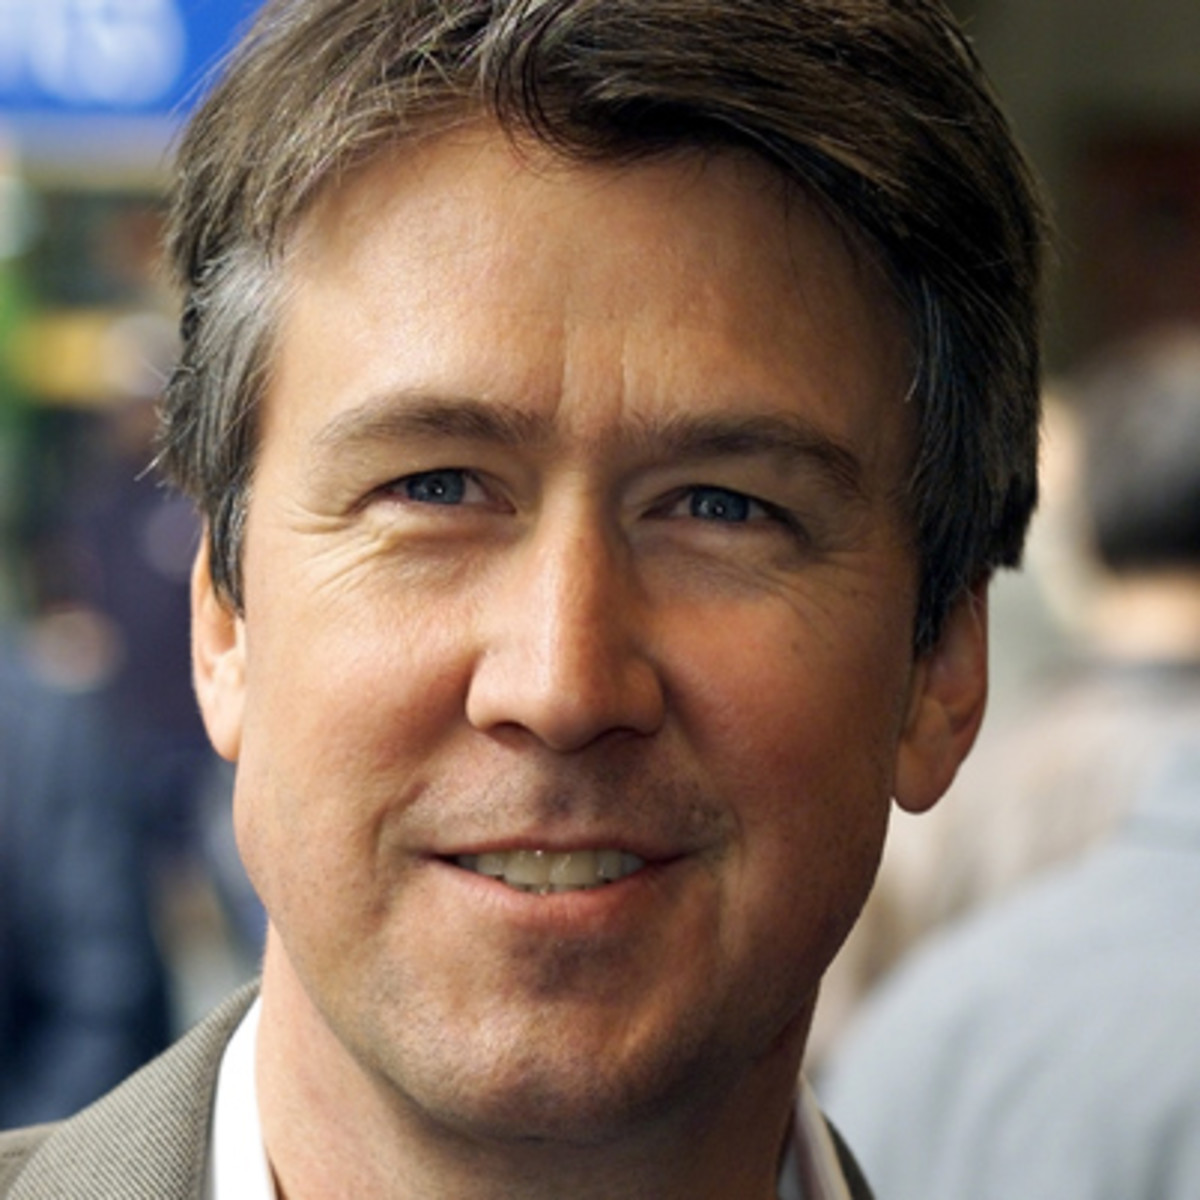 Alan Ruck - Film Actor, Television Actor, Actor - Biography